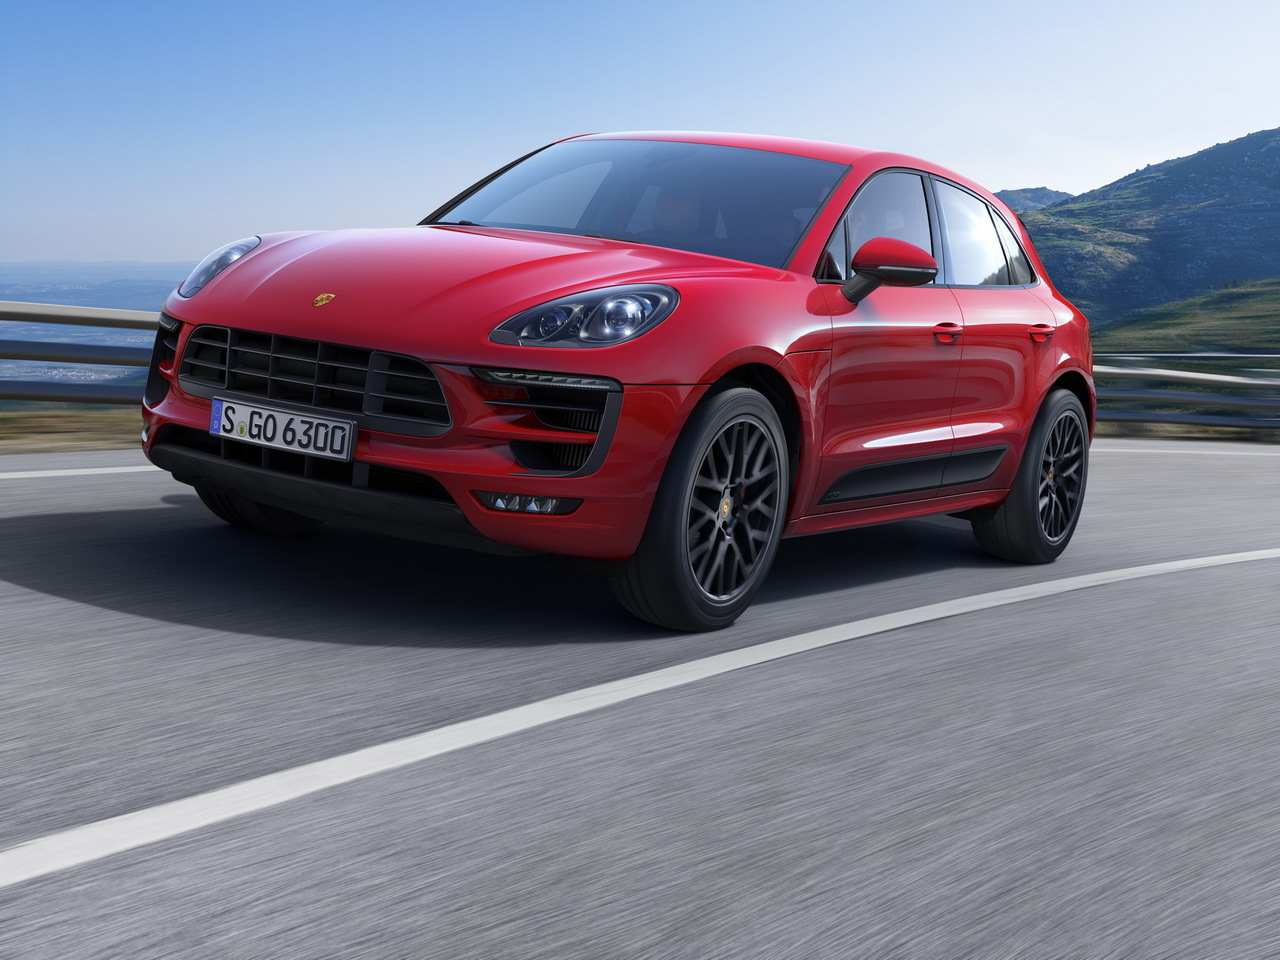 porsche macan gts 2015 prix et photos du plus sportifs des macan photo 8 l 39 argus. Black Bedroom Furniture Sets. Home Design Ideas